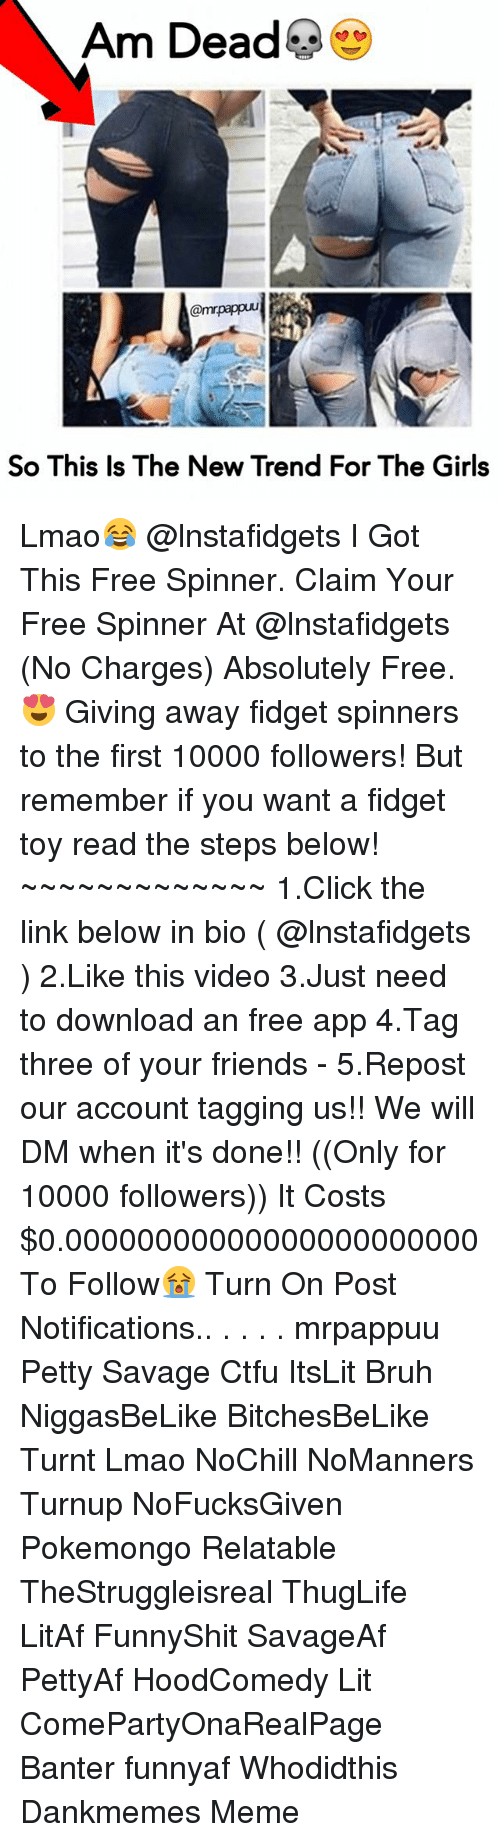 Bruh, Click, and Ctfu: Am Dead  @mrpappuu  So This Is The New Trend For The Girls Lmao😂 @lnstafidgets I Got This Free Spinner. Claim Your Free Spinner At @lnstafidgets (No Charges) Absolutely Free.😍 Giving away fidget spinners to the first 10000 followers! But remember if you want a fidget toy read the steps below! ~~~~~~~~~~~~~ 1.Click the link below in bio ( @lnstafidgets ) 2.Like this video 3.Just need to download an free app 4.Tag three of your friends - 5.Repost our account tagging us!! We will DM when it's done!! ((Only for 10000 followers)) It Costs $0.00000000000000000000000 To Follow😭 Turn On Post Notifications.. . . . . mrpappuu Petty Savage Ctfu ItsLit Bruh NiggasBeLike BitchesBeLike Turnt Lmao NoChill NoManners Turnup NoFucksGiven Pokemongo Relatable TheStruggleisreal ThugLife LitAf FunnyShit SavageAf PettyAf HoodComedy Lit ComePartyOnaRealPage Banter funnyaf Whodidthis Dankmemes Meme